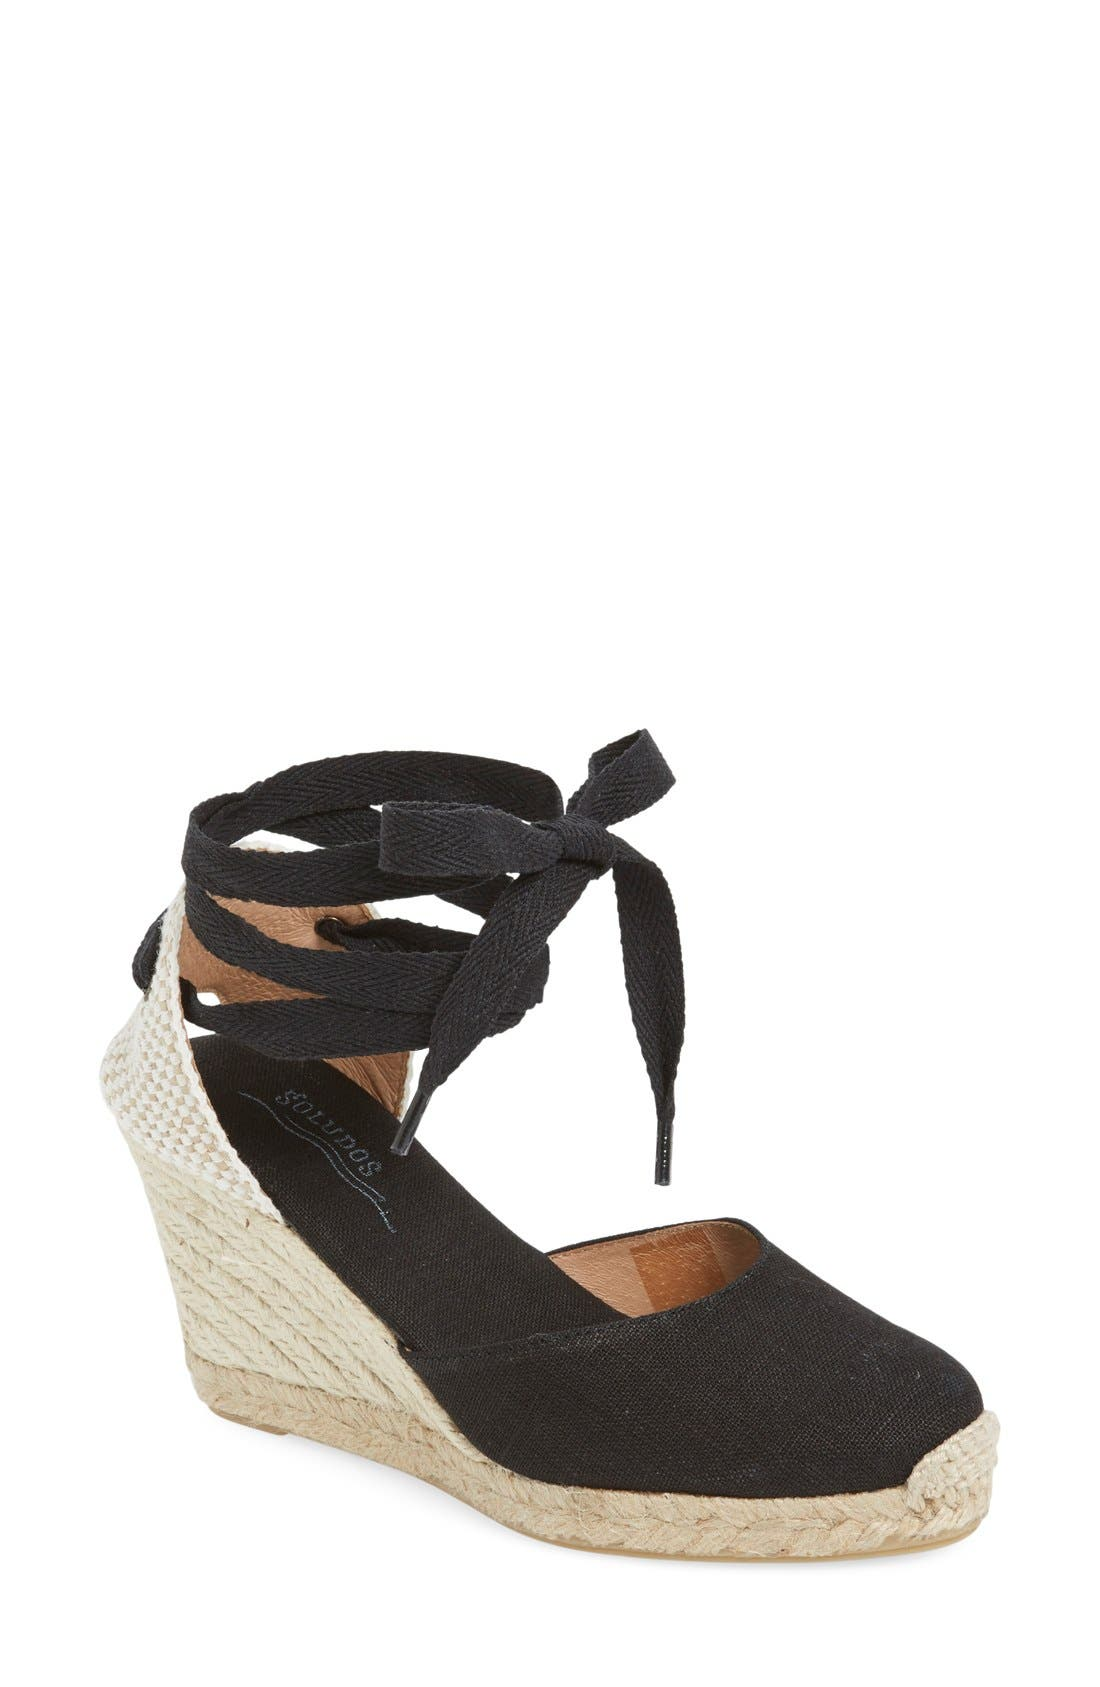 Wedge Lace-Up Espadrille Sandal,                             Main thumbnail 1, color,                             BLACK